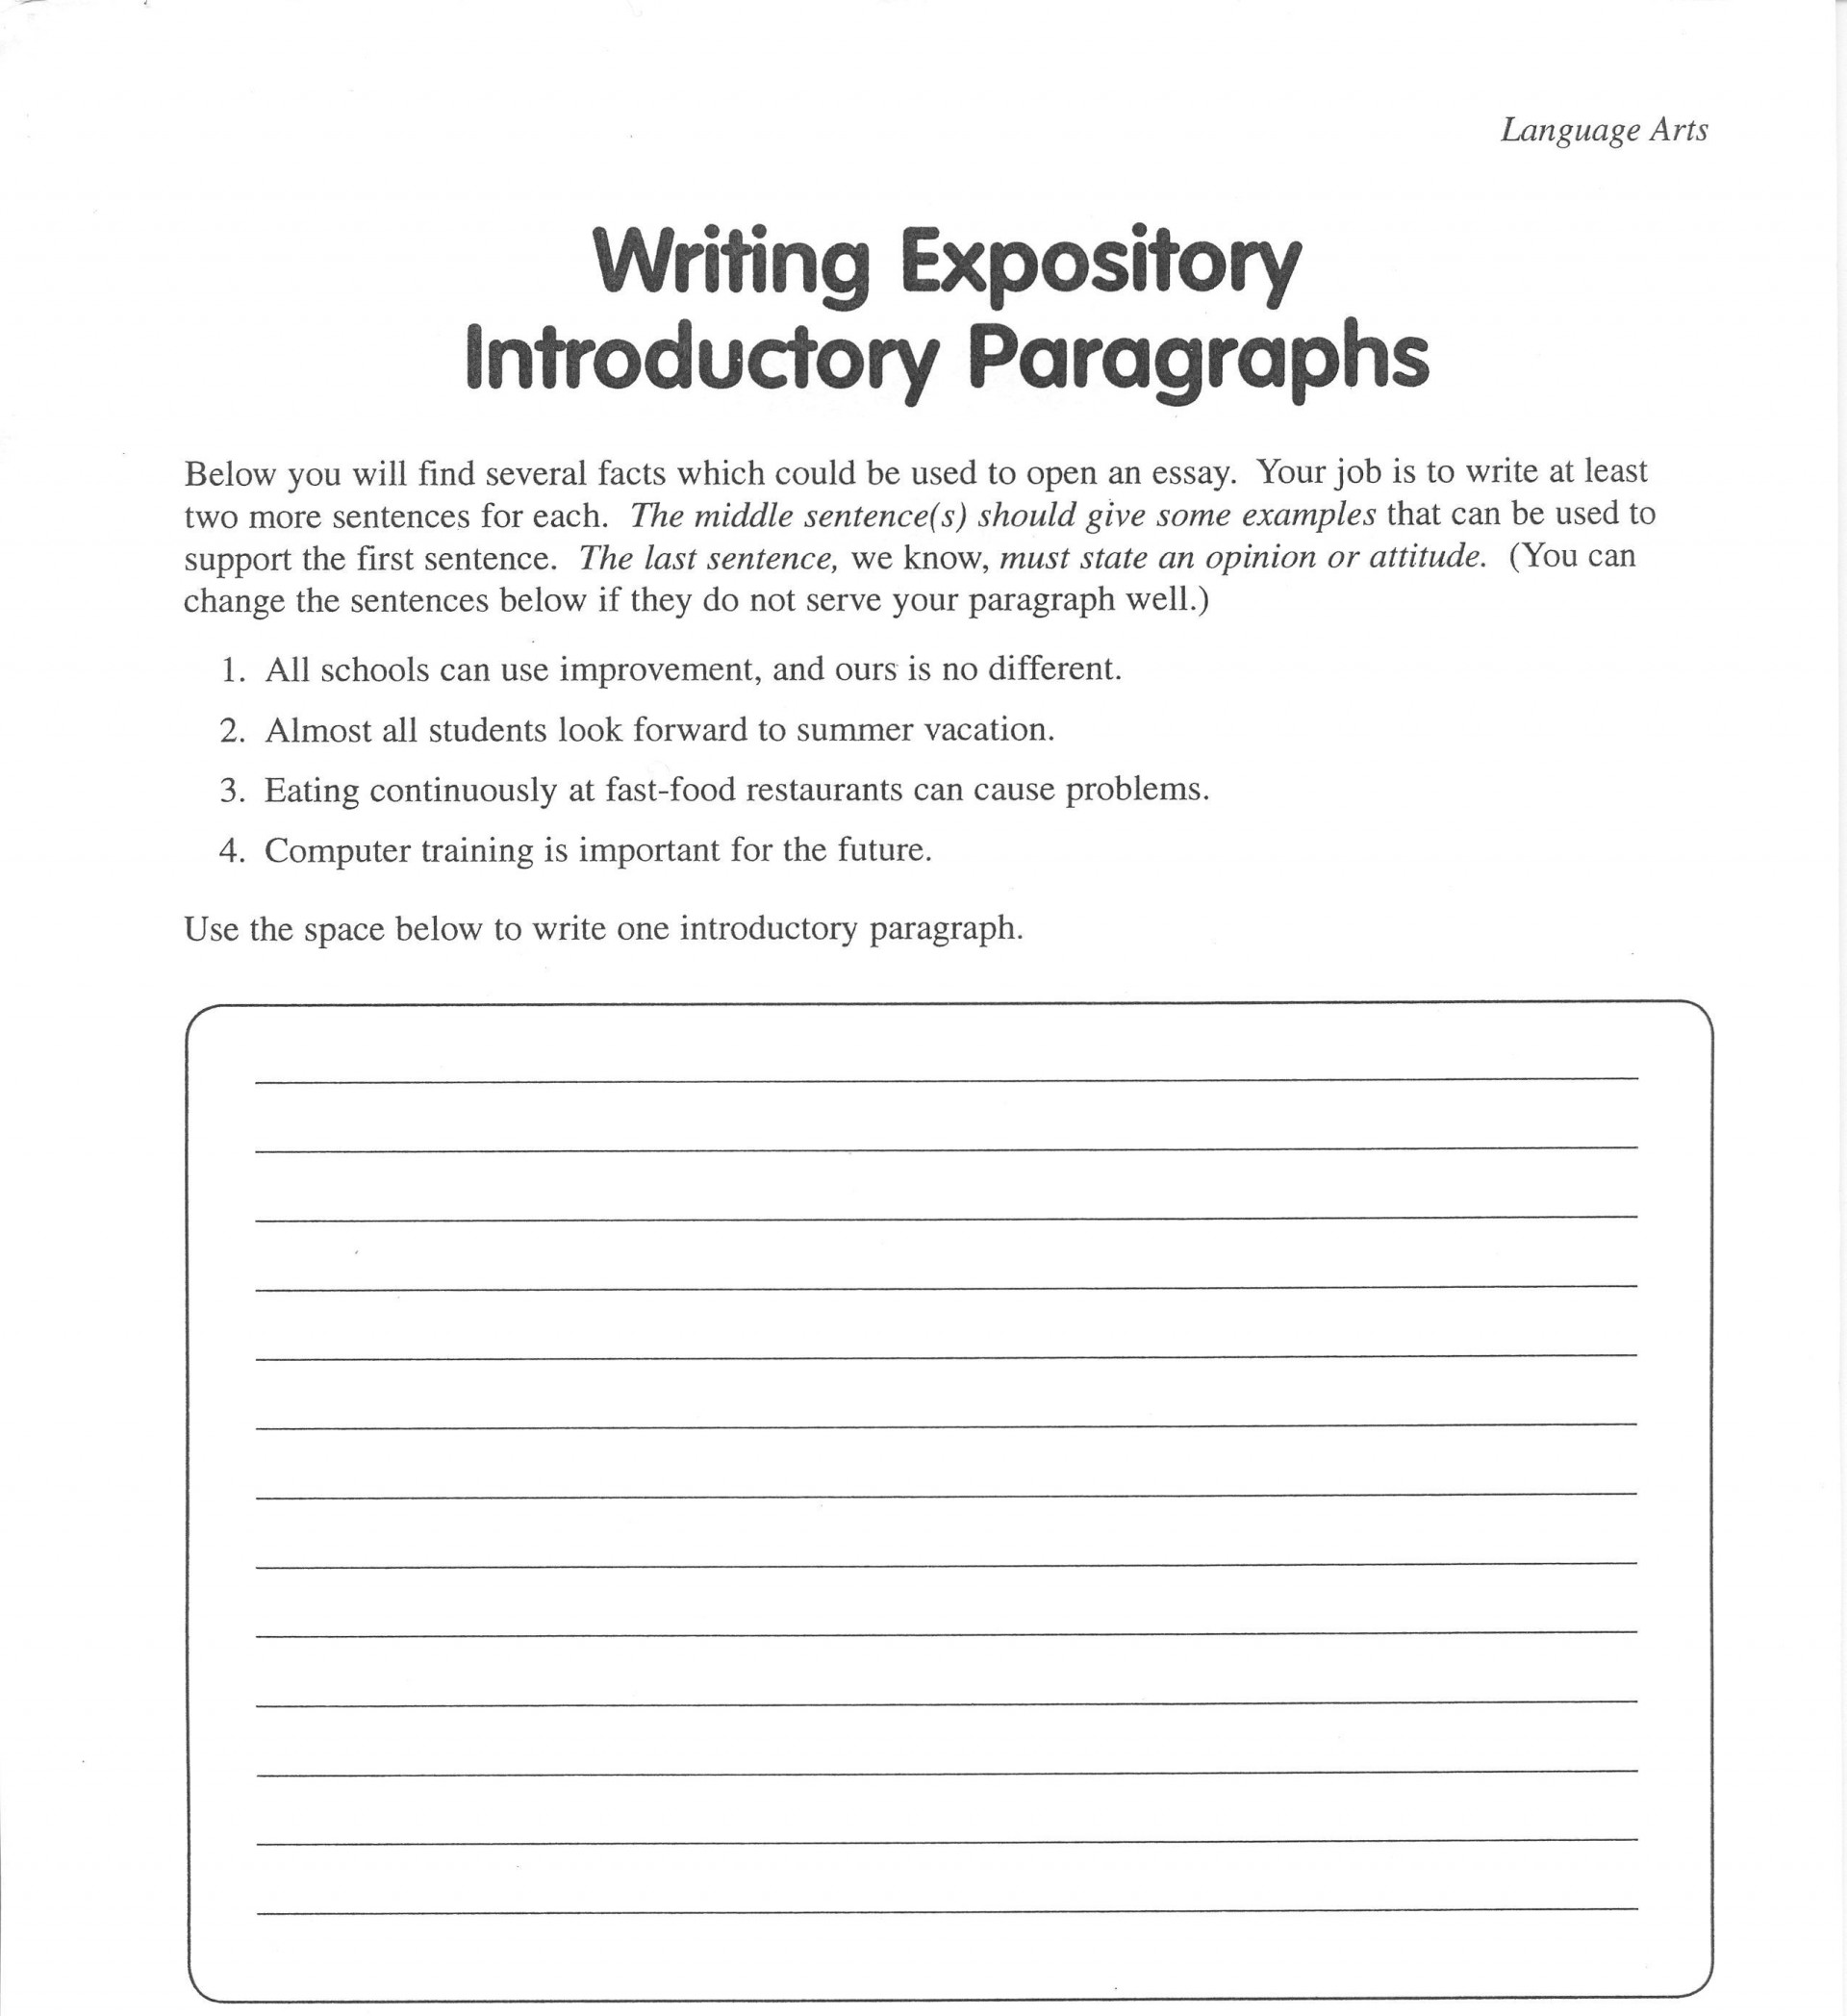 010 Writing20expository20introductory20paragraphs Intro Paragraph Essay Outstanding Example Introductory Expository Introduction Argumentative Format 1920